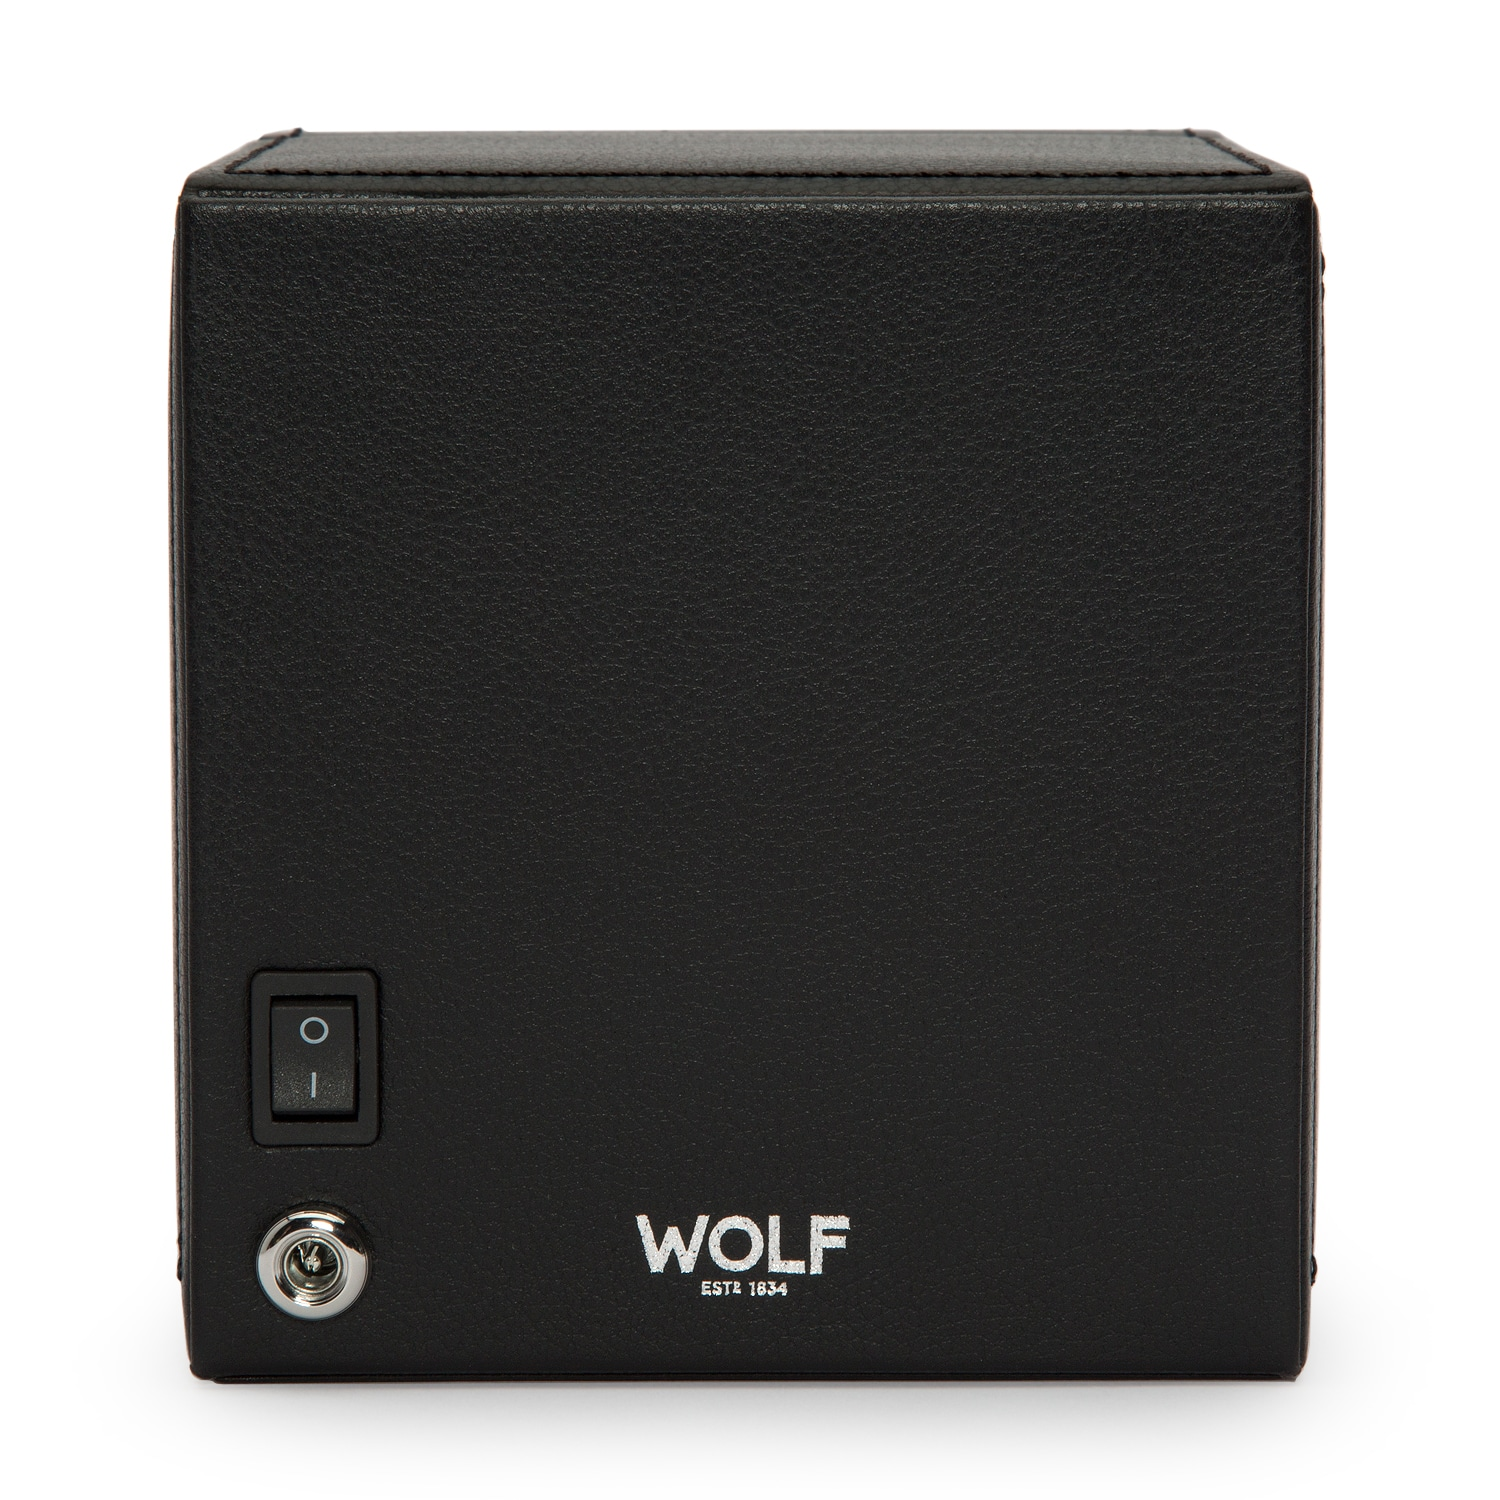 WOLF Cub Winder With Cover Black